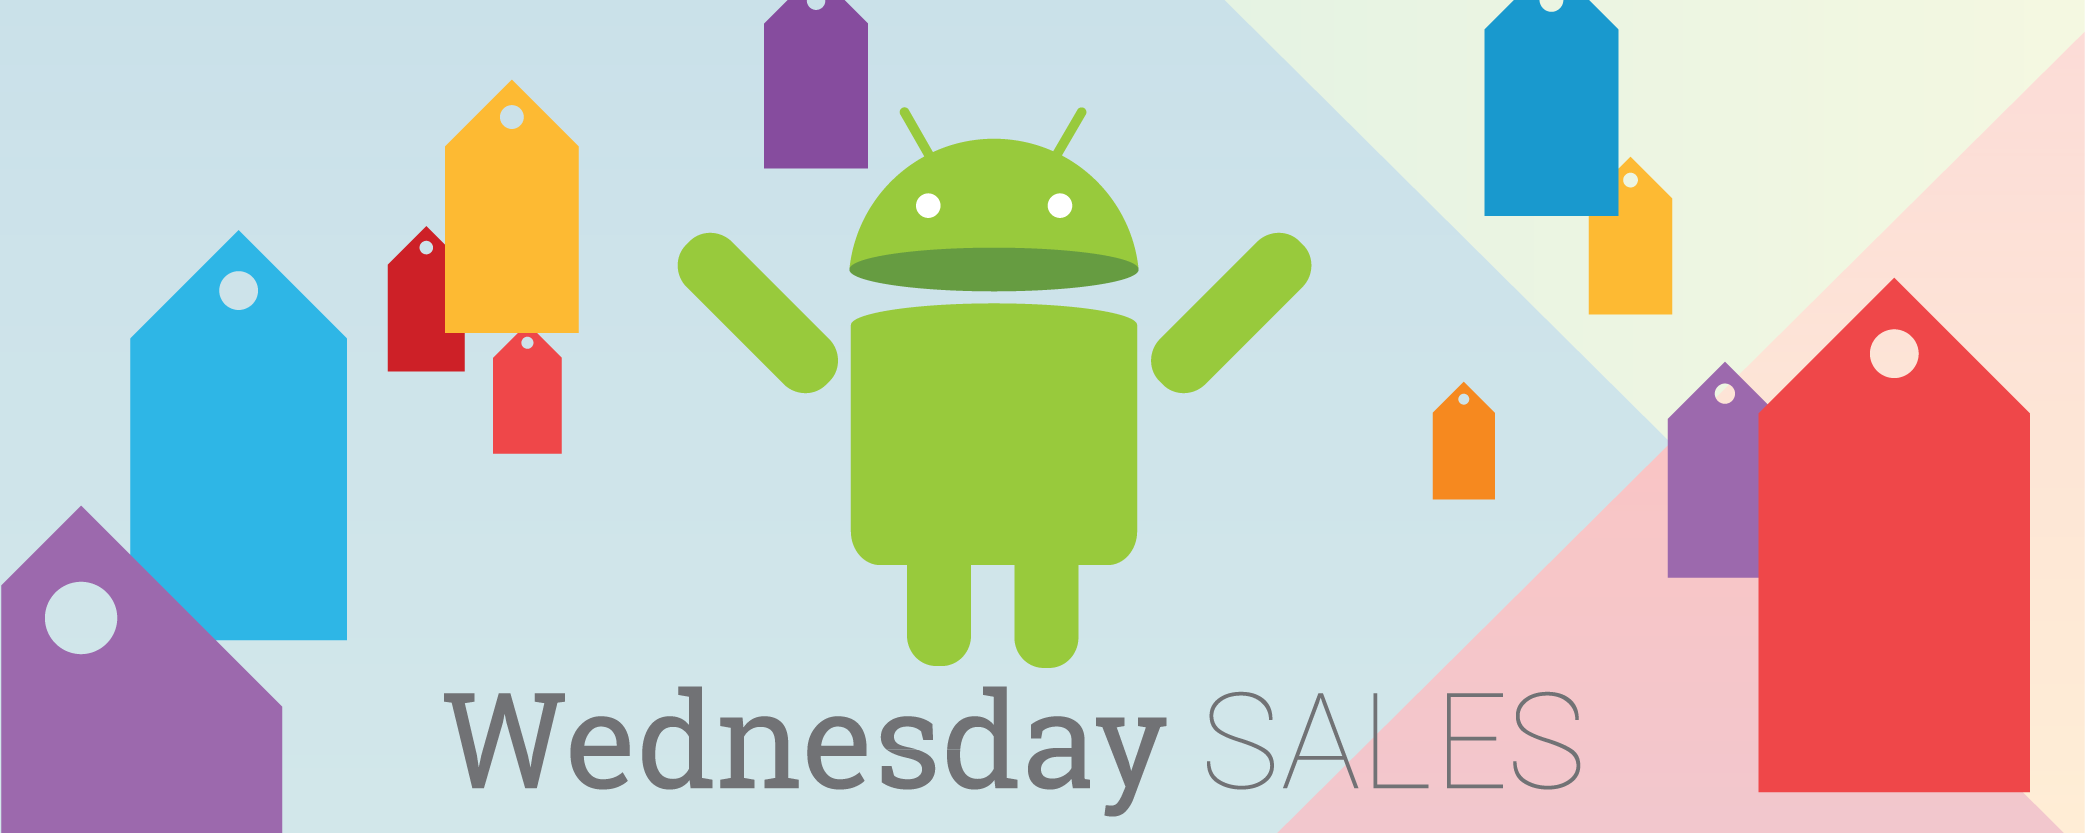 25 temporarily free and 38 on-sale apps and games for Wednesday